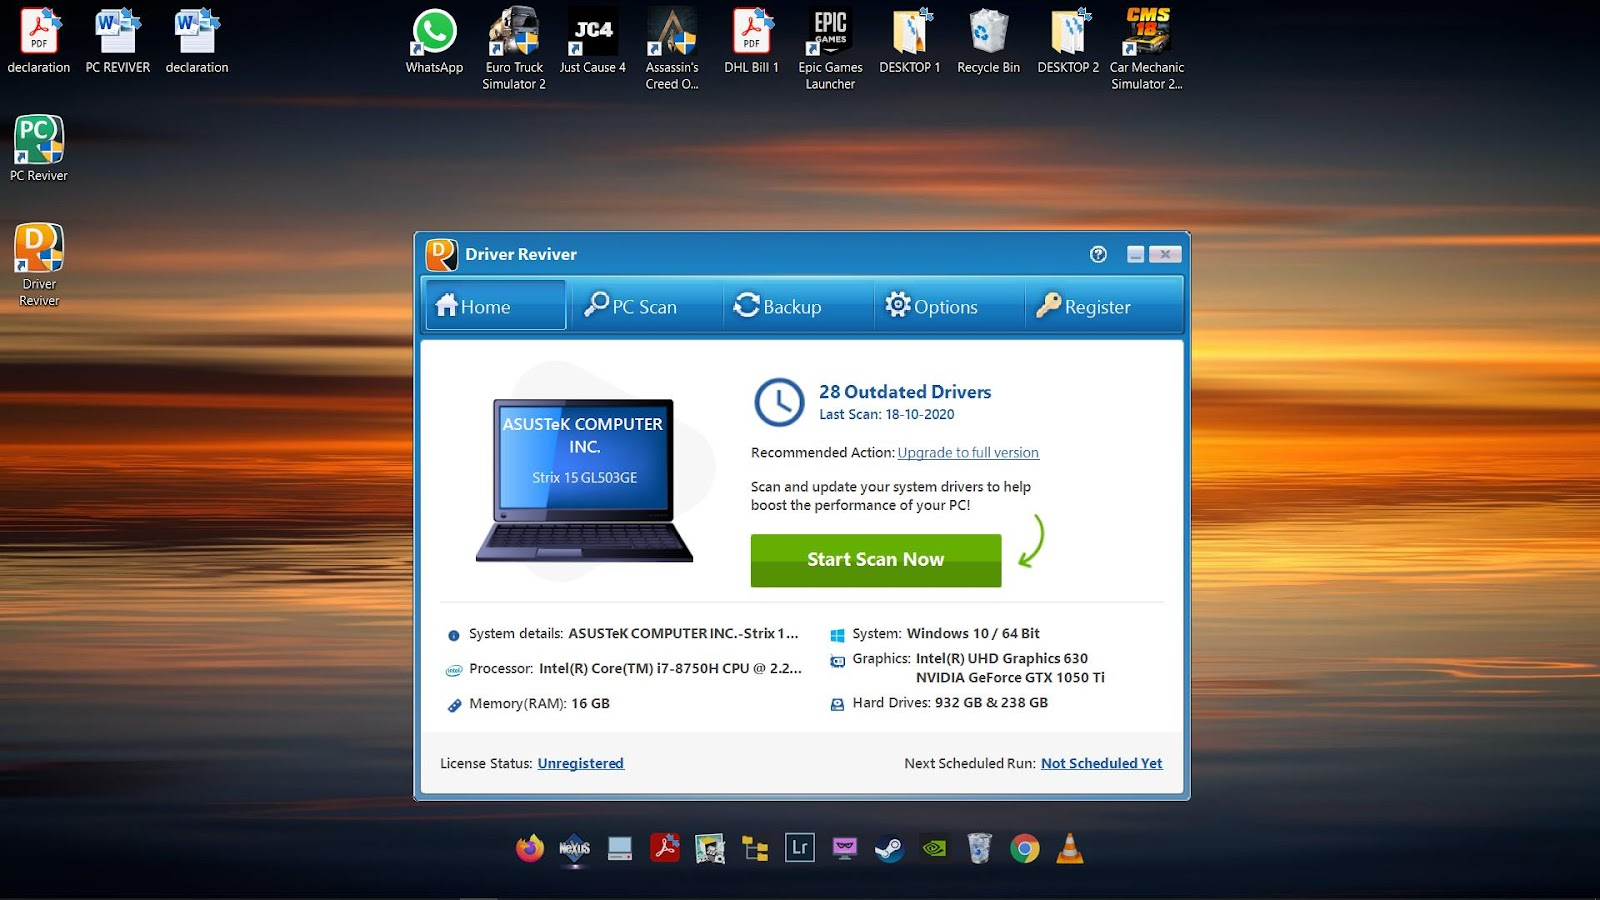 Software Driver Reviver